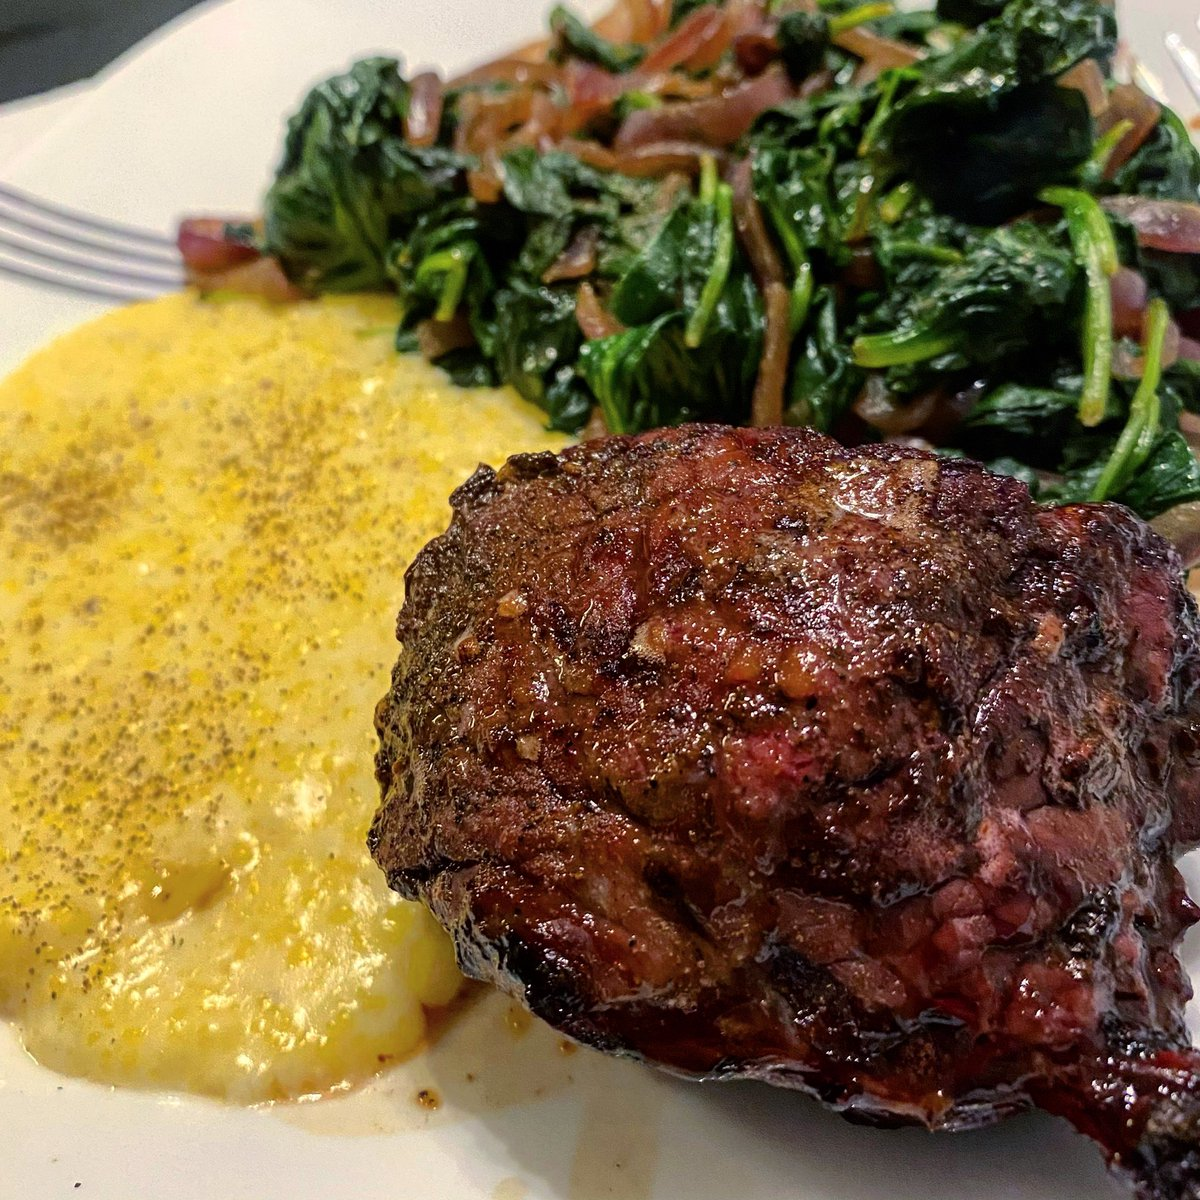 No hike today, but we did have a good #dinnerathome. Creamy polenta, sautéed spinach with onions, and #steak. We've eaten out once since #covid_19 started and do not get nearly as much take out. So, I've been working on my #cooking skills in the mean time😋 #saturdaynightathome https://t.co/aoSMfKKB84